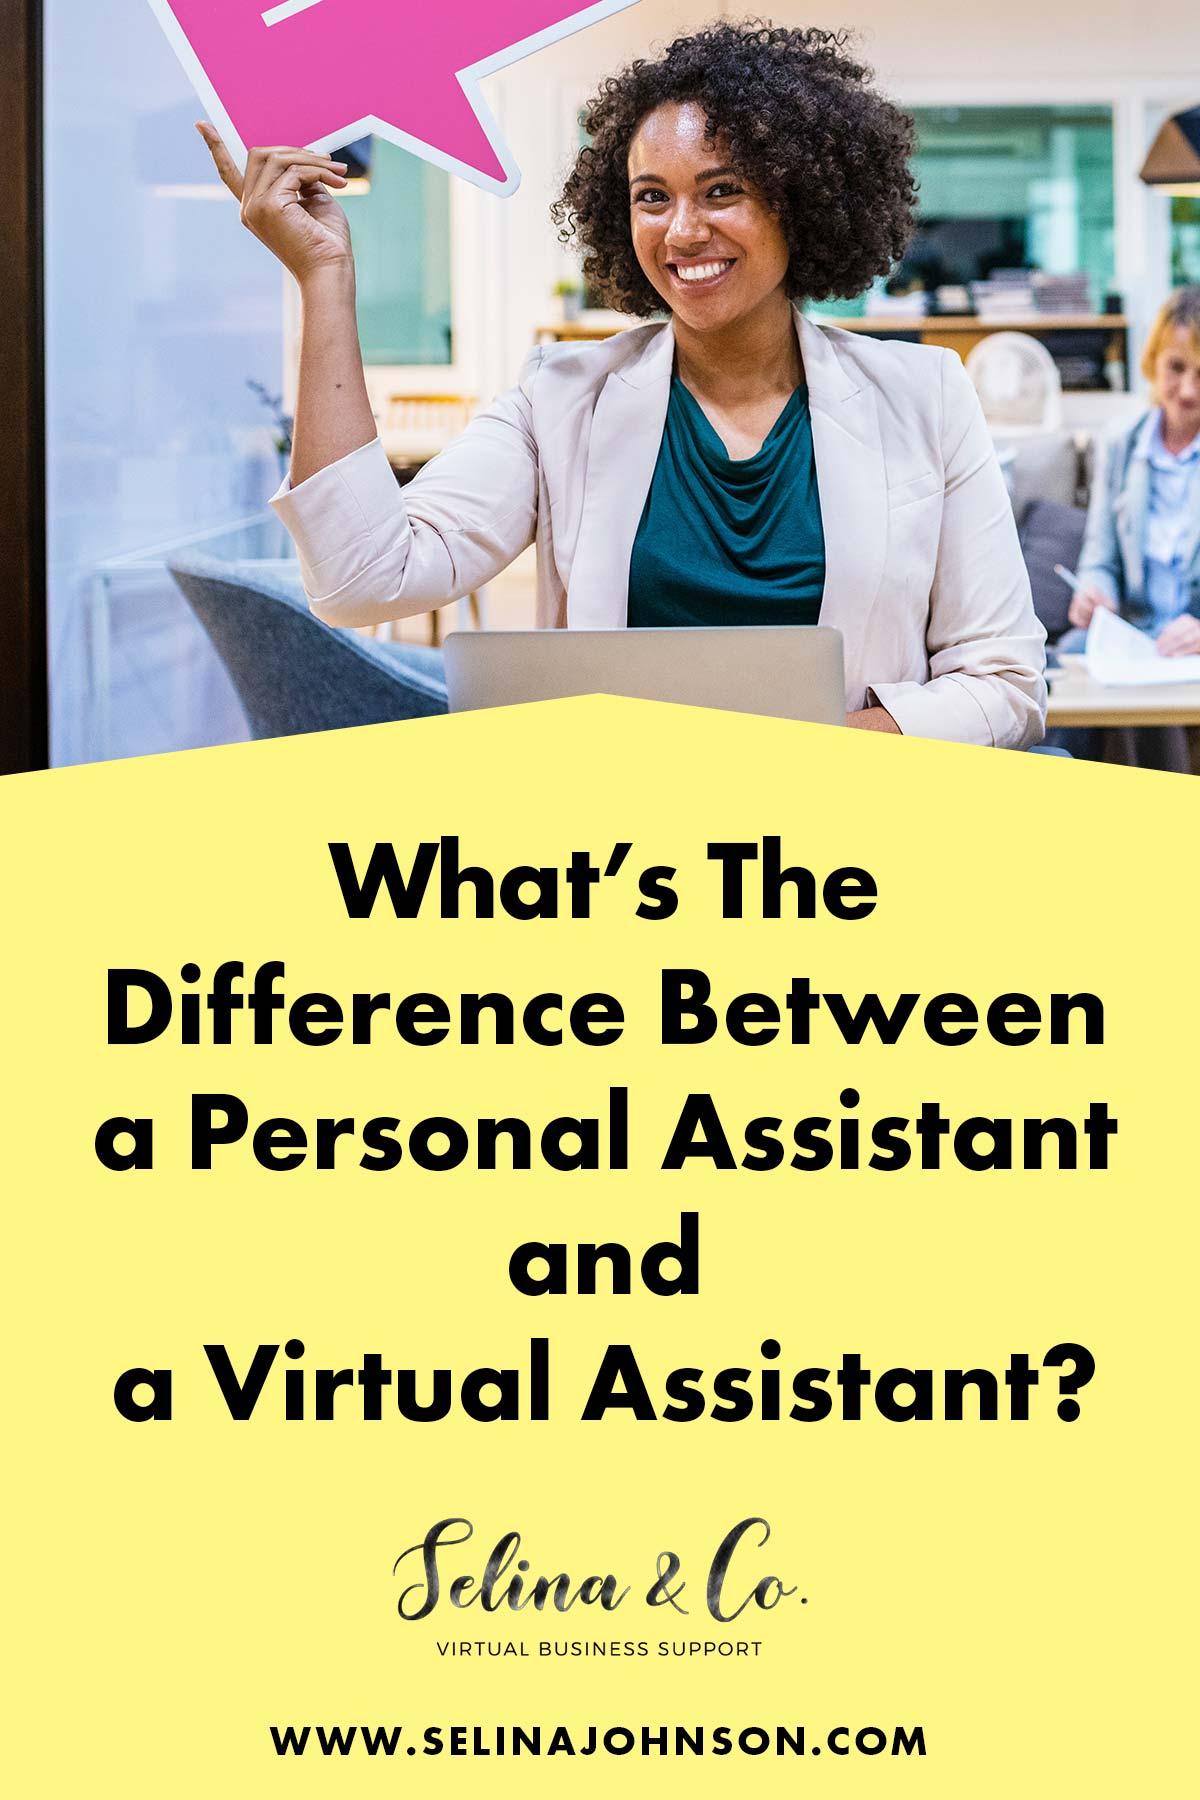 difference-between-personal-virtual-assistant.jpg